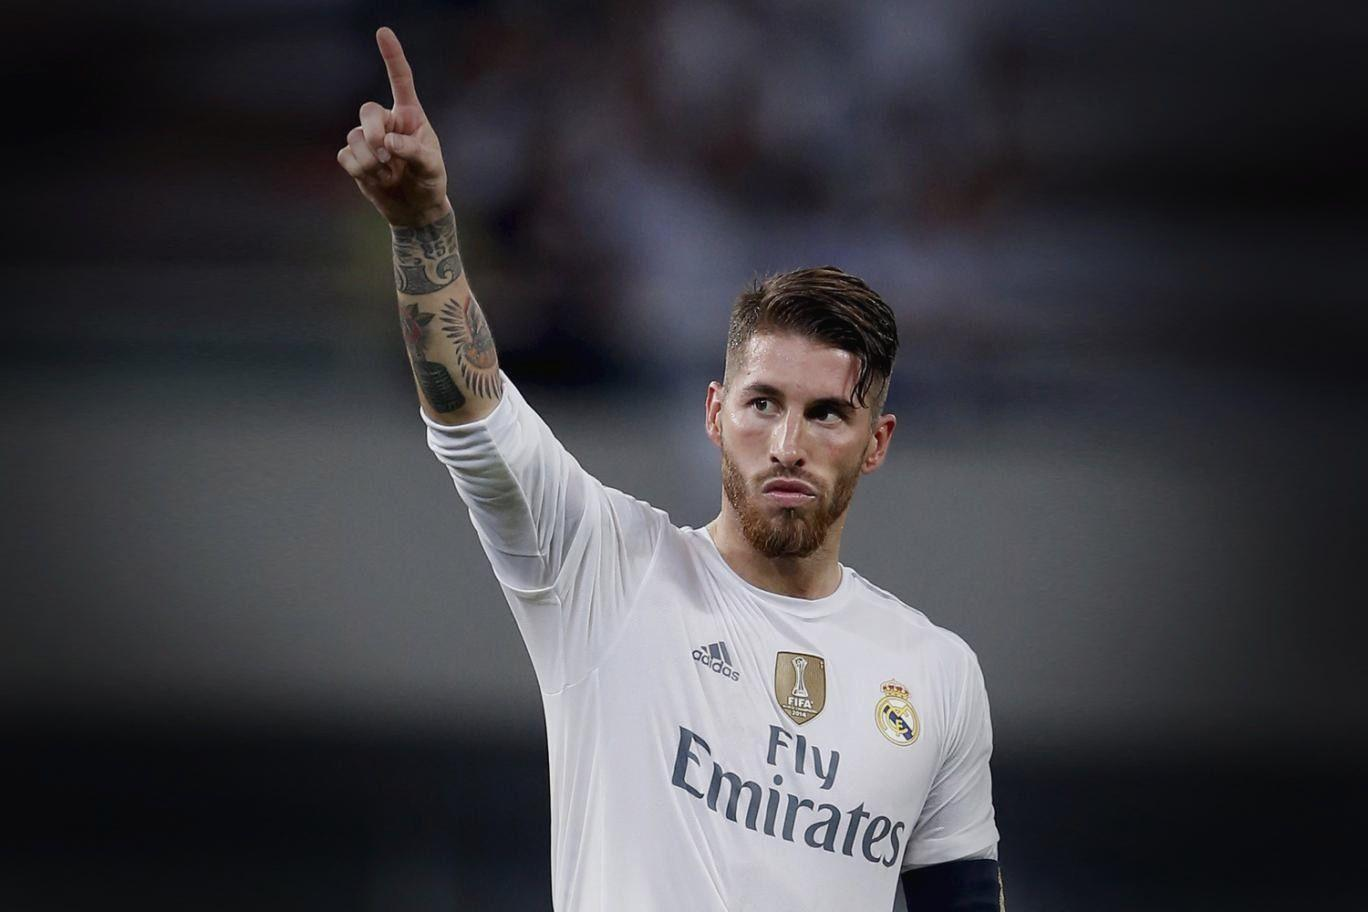 sergio ramos hd images - photo #1